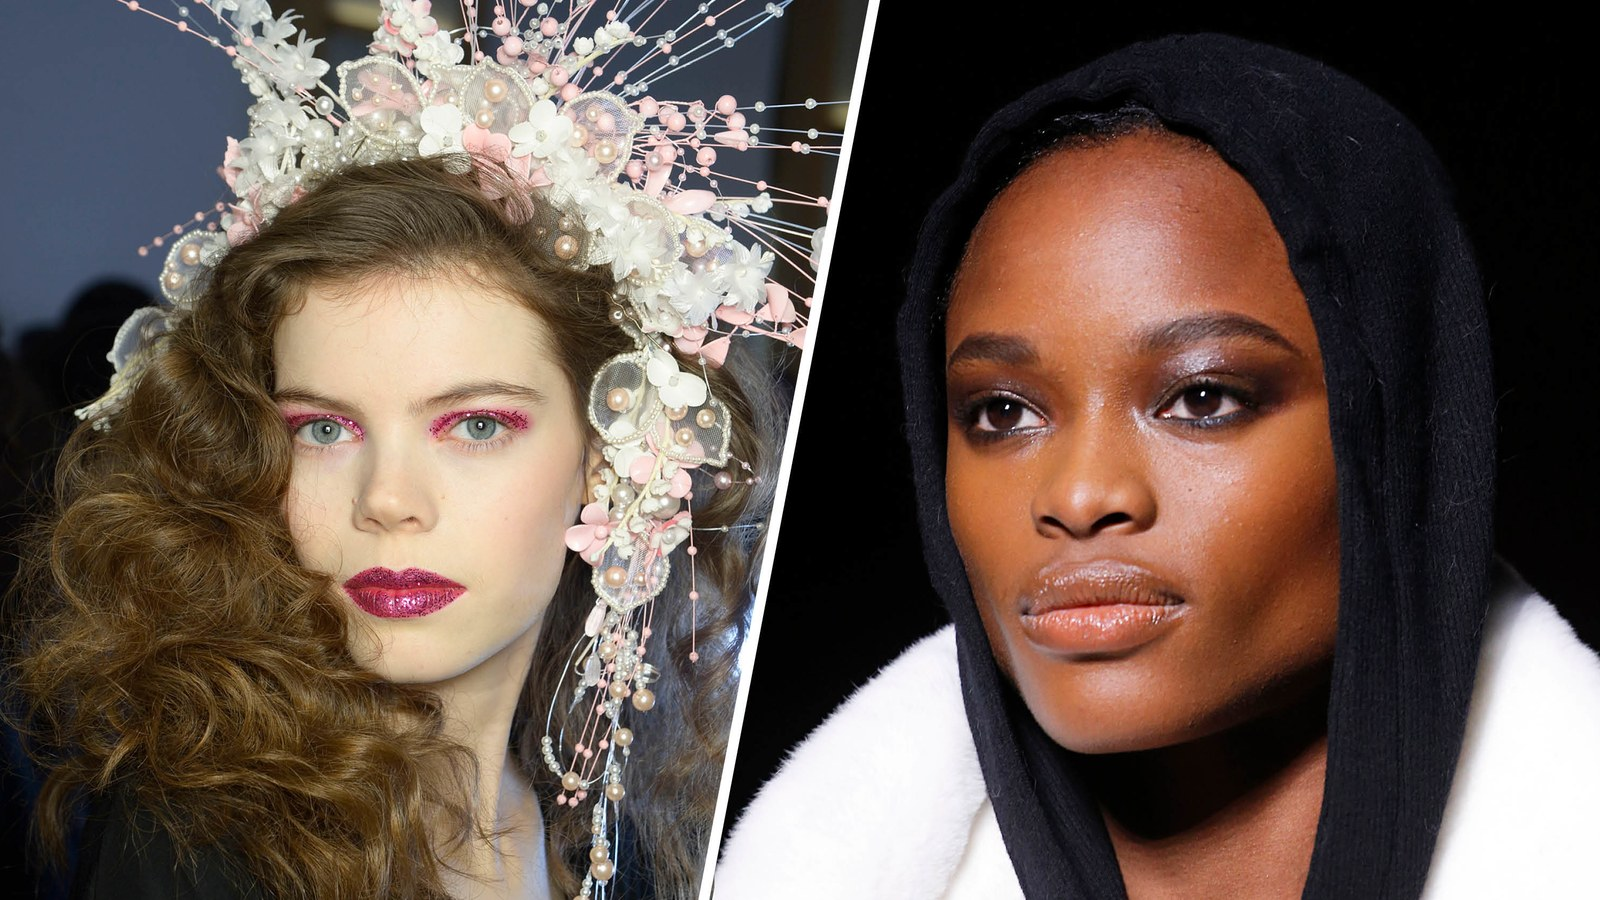 The Best Hair and Makeup We've Seen on NYFW's Fall 2019 Runways So Far